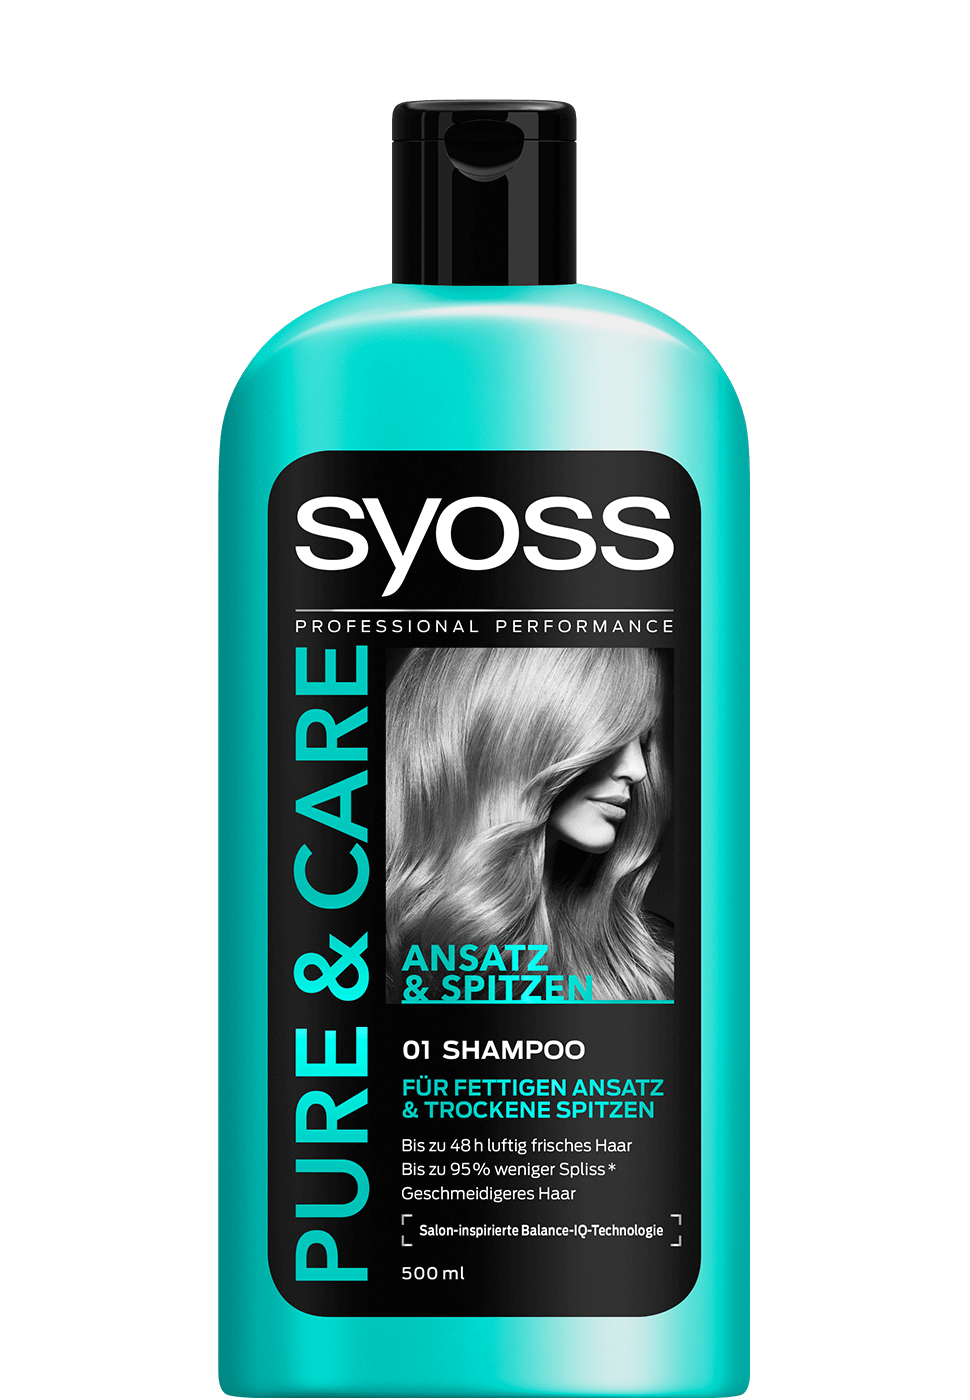 Syoss Pure and Care Shampoo